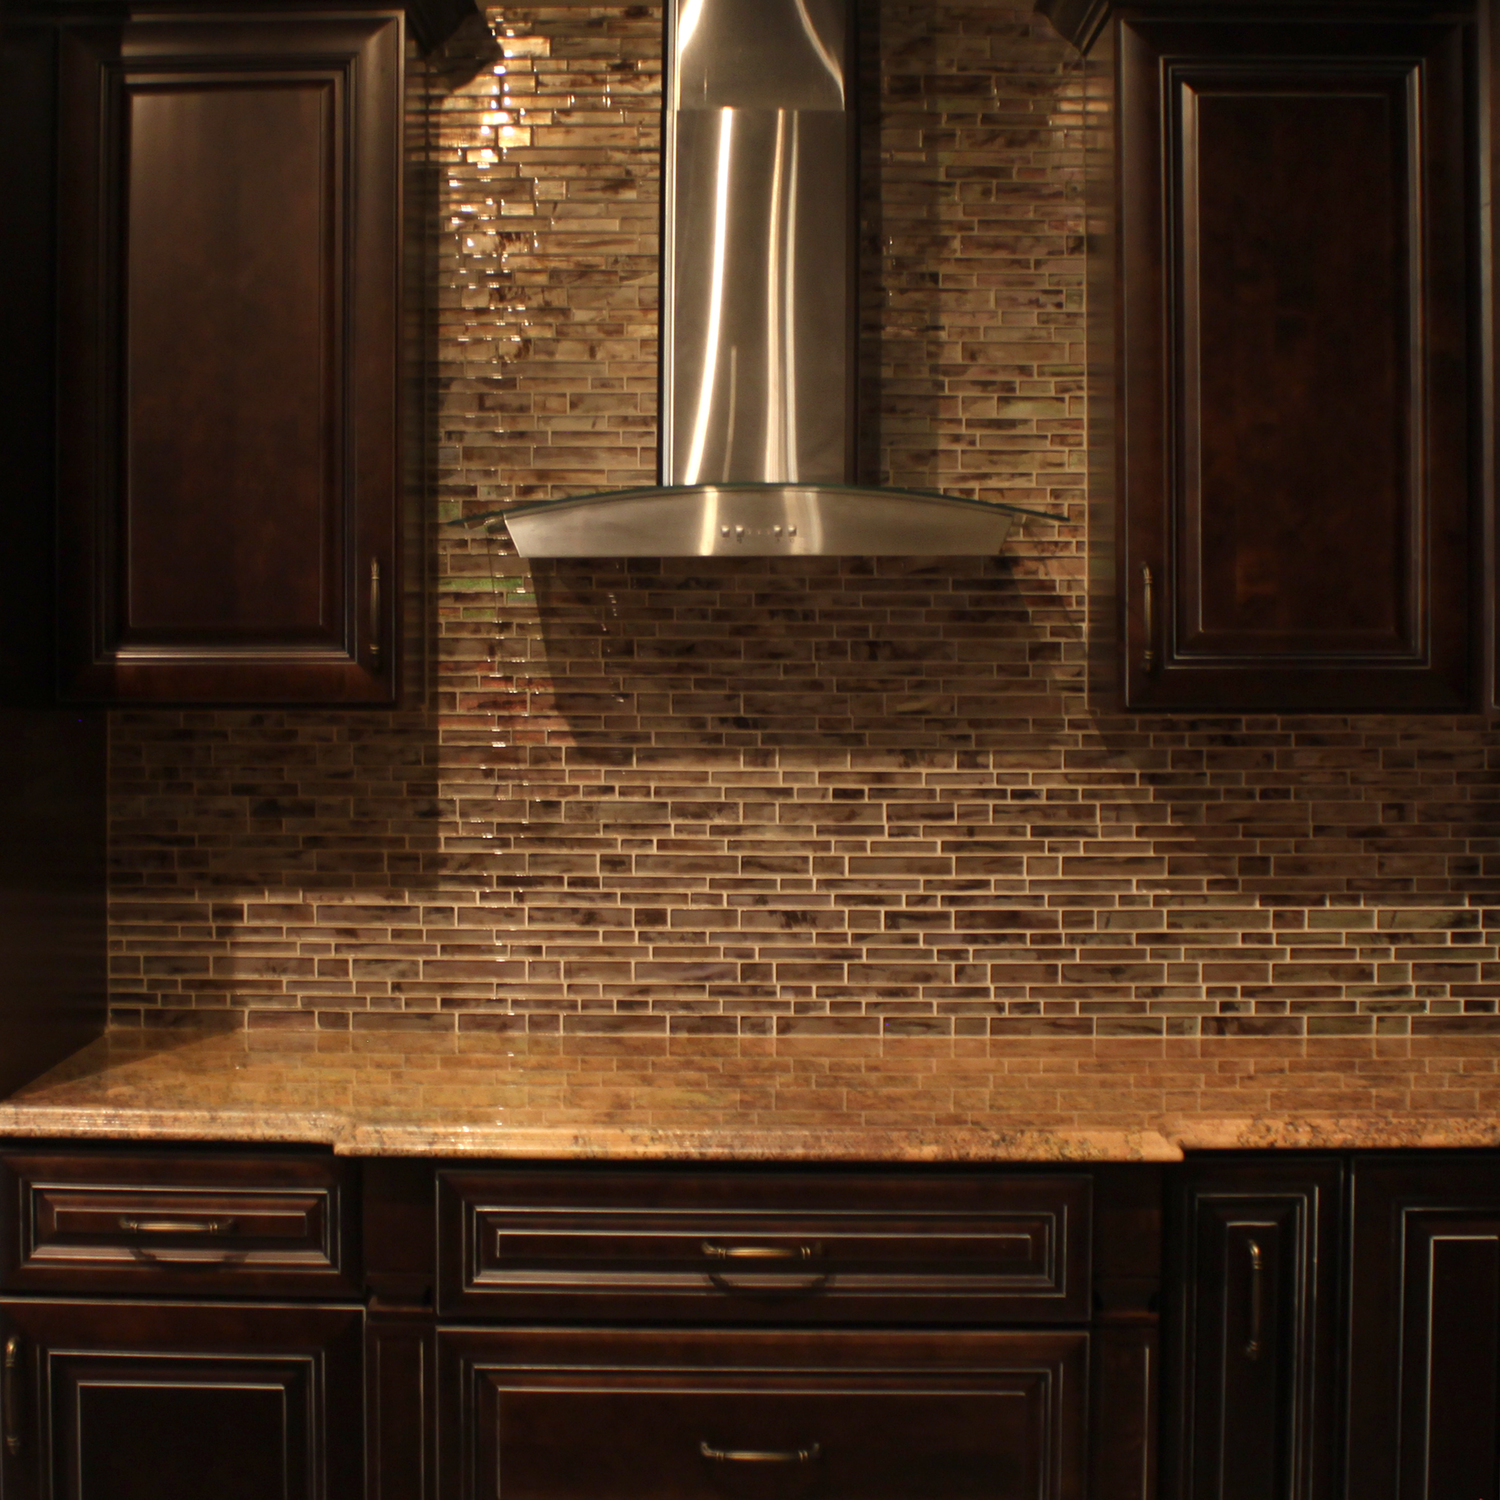 St Charles Kitchen Cabinets Sinks And Countertops Rock Counter